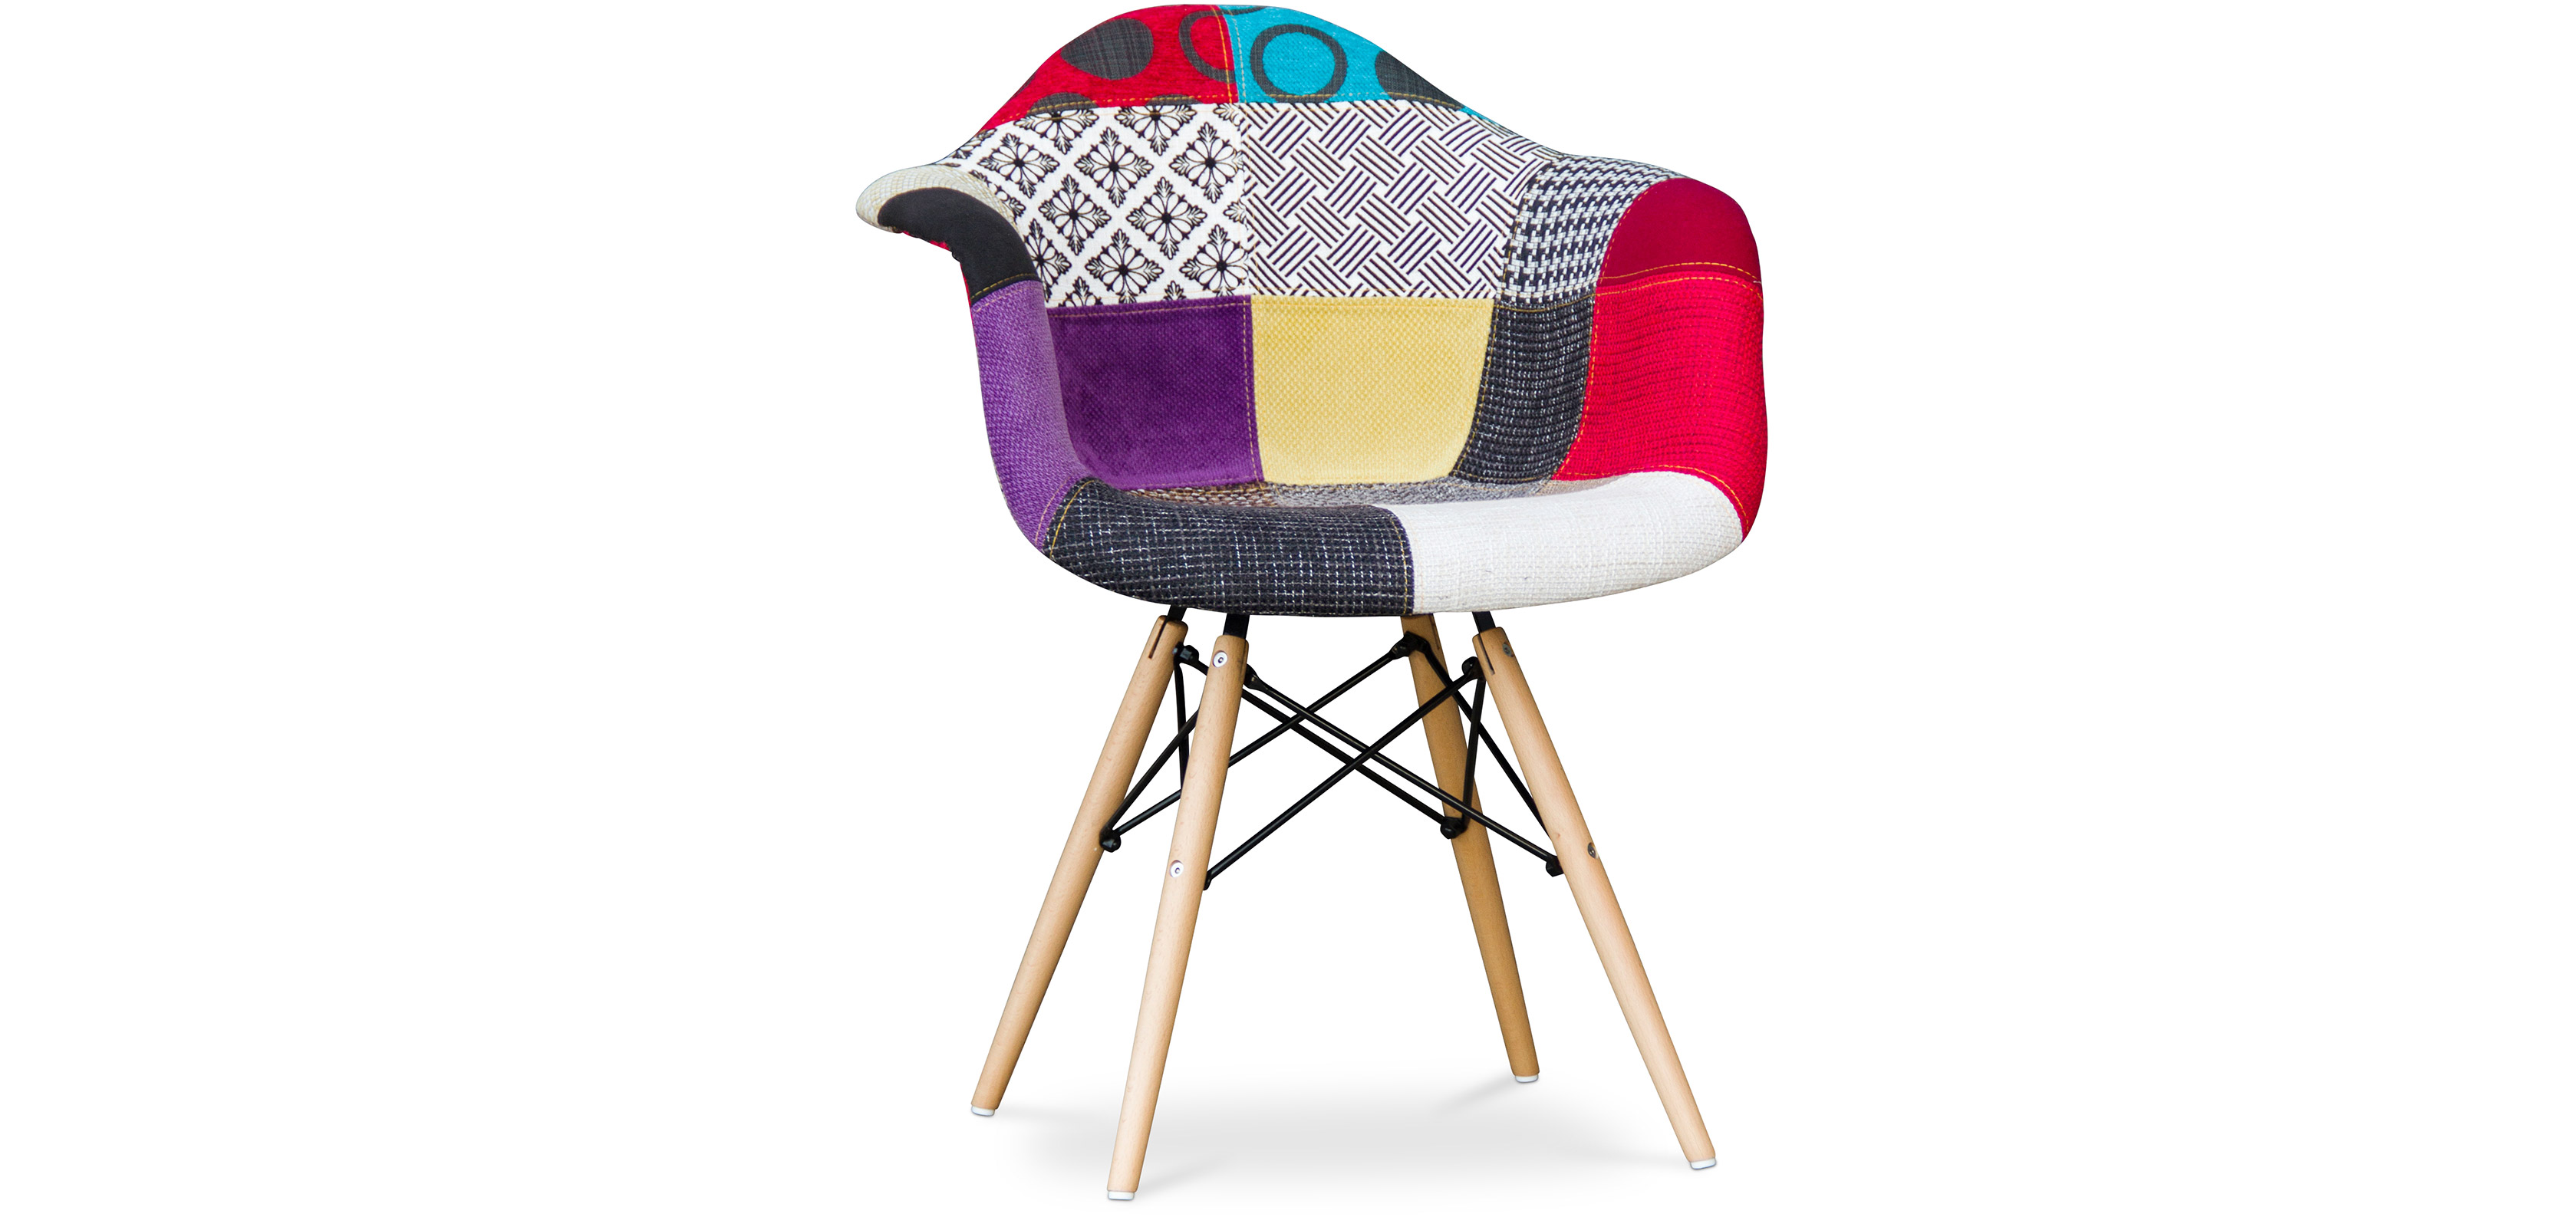 chaise eames patchwork chaise with chaise eames patchwork top eames rar patchwork edition with - Chaise Patchwork Eames